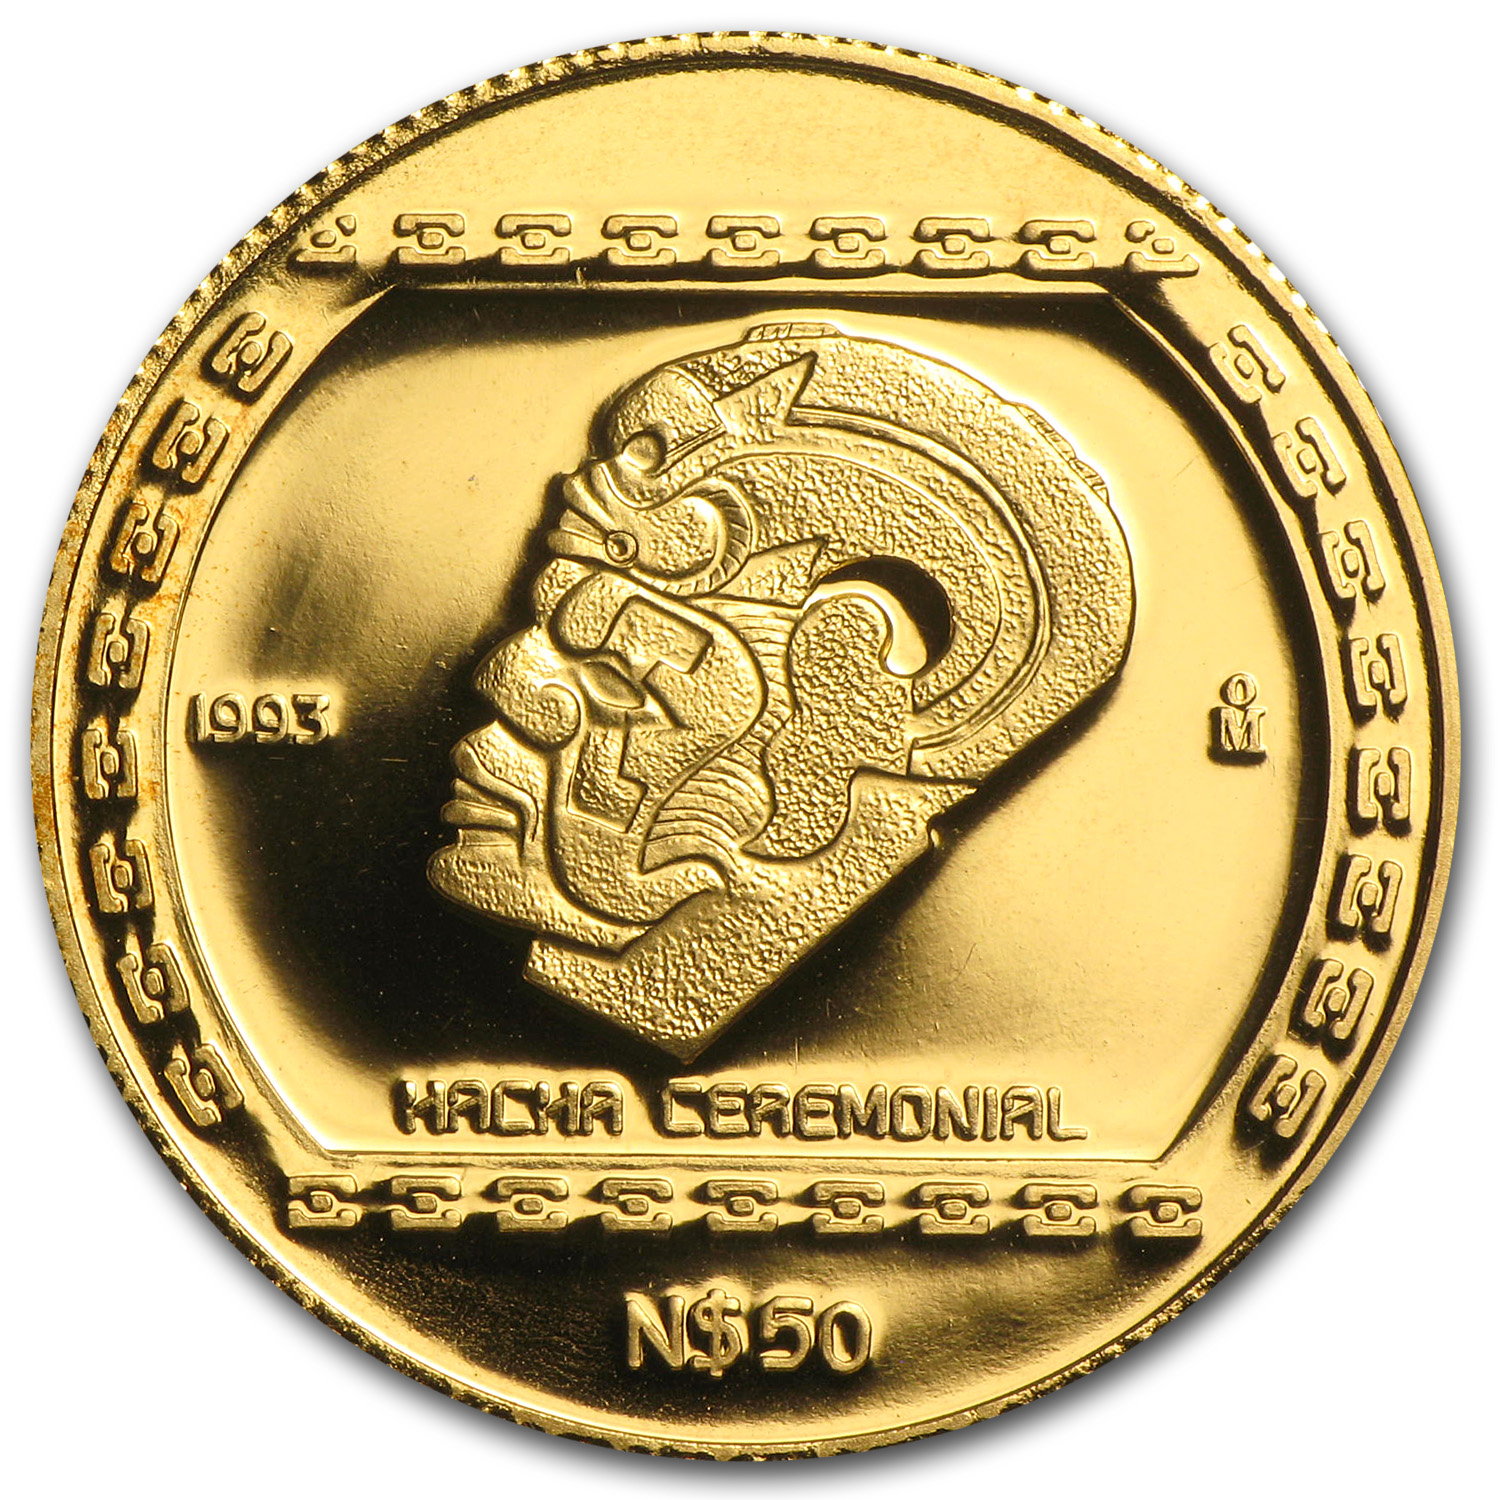 1993 Mexico Gold 50 Pesos Hacha Ceremonial Proof